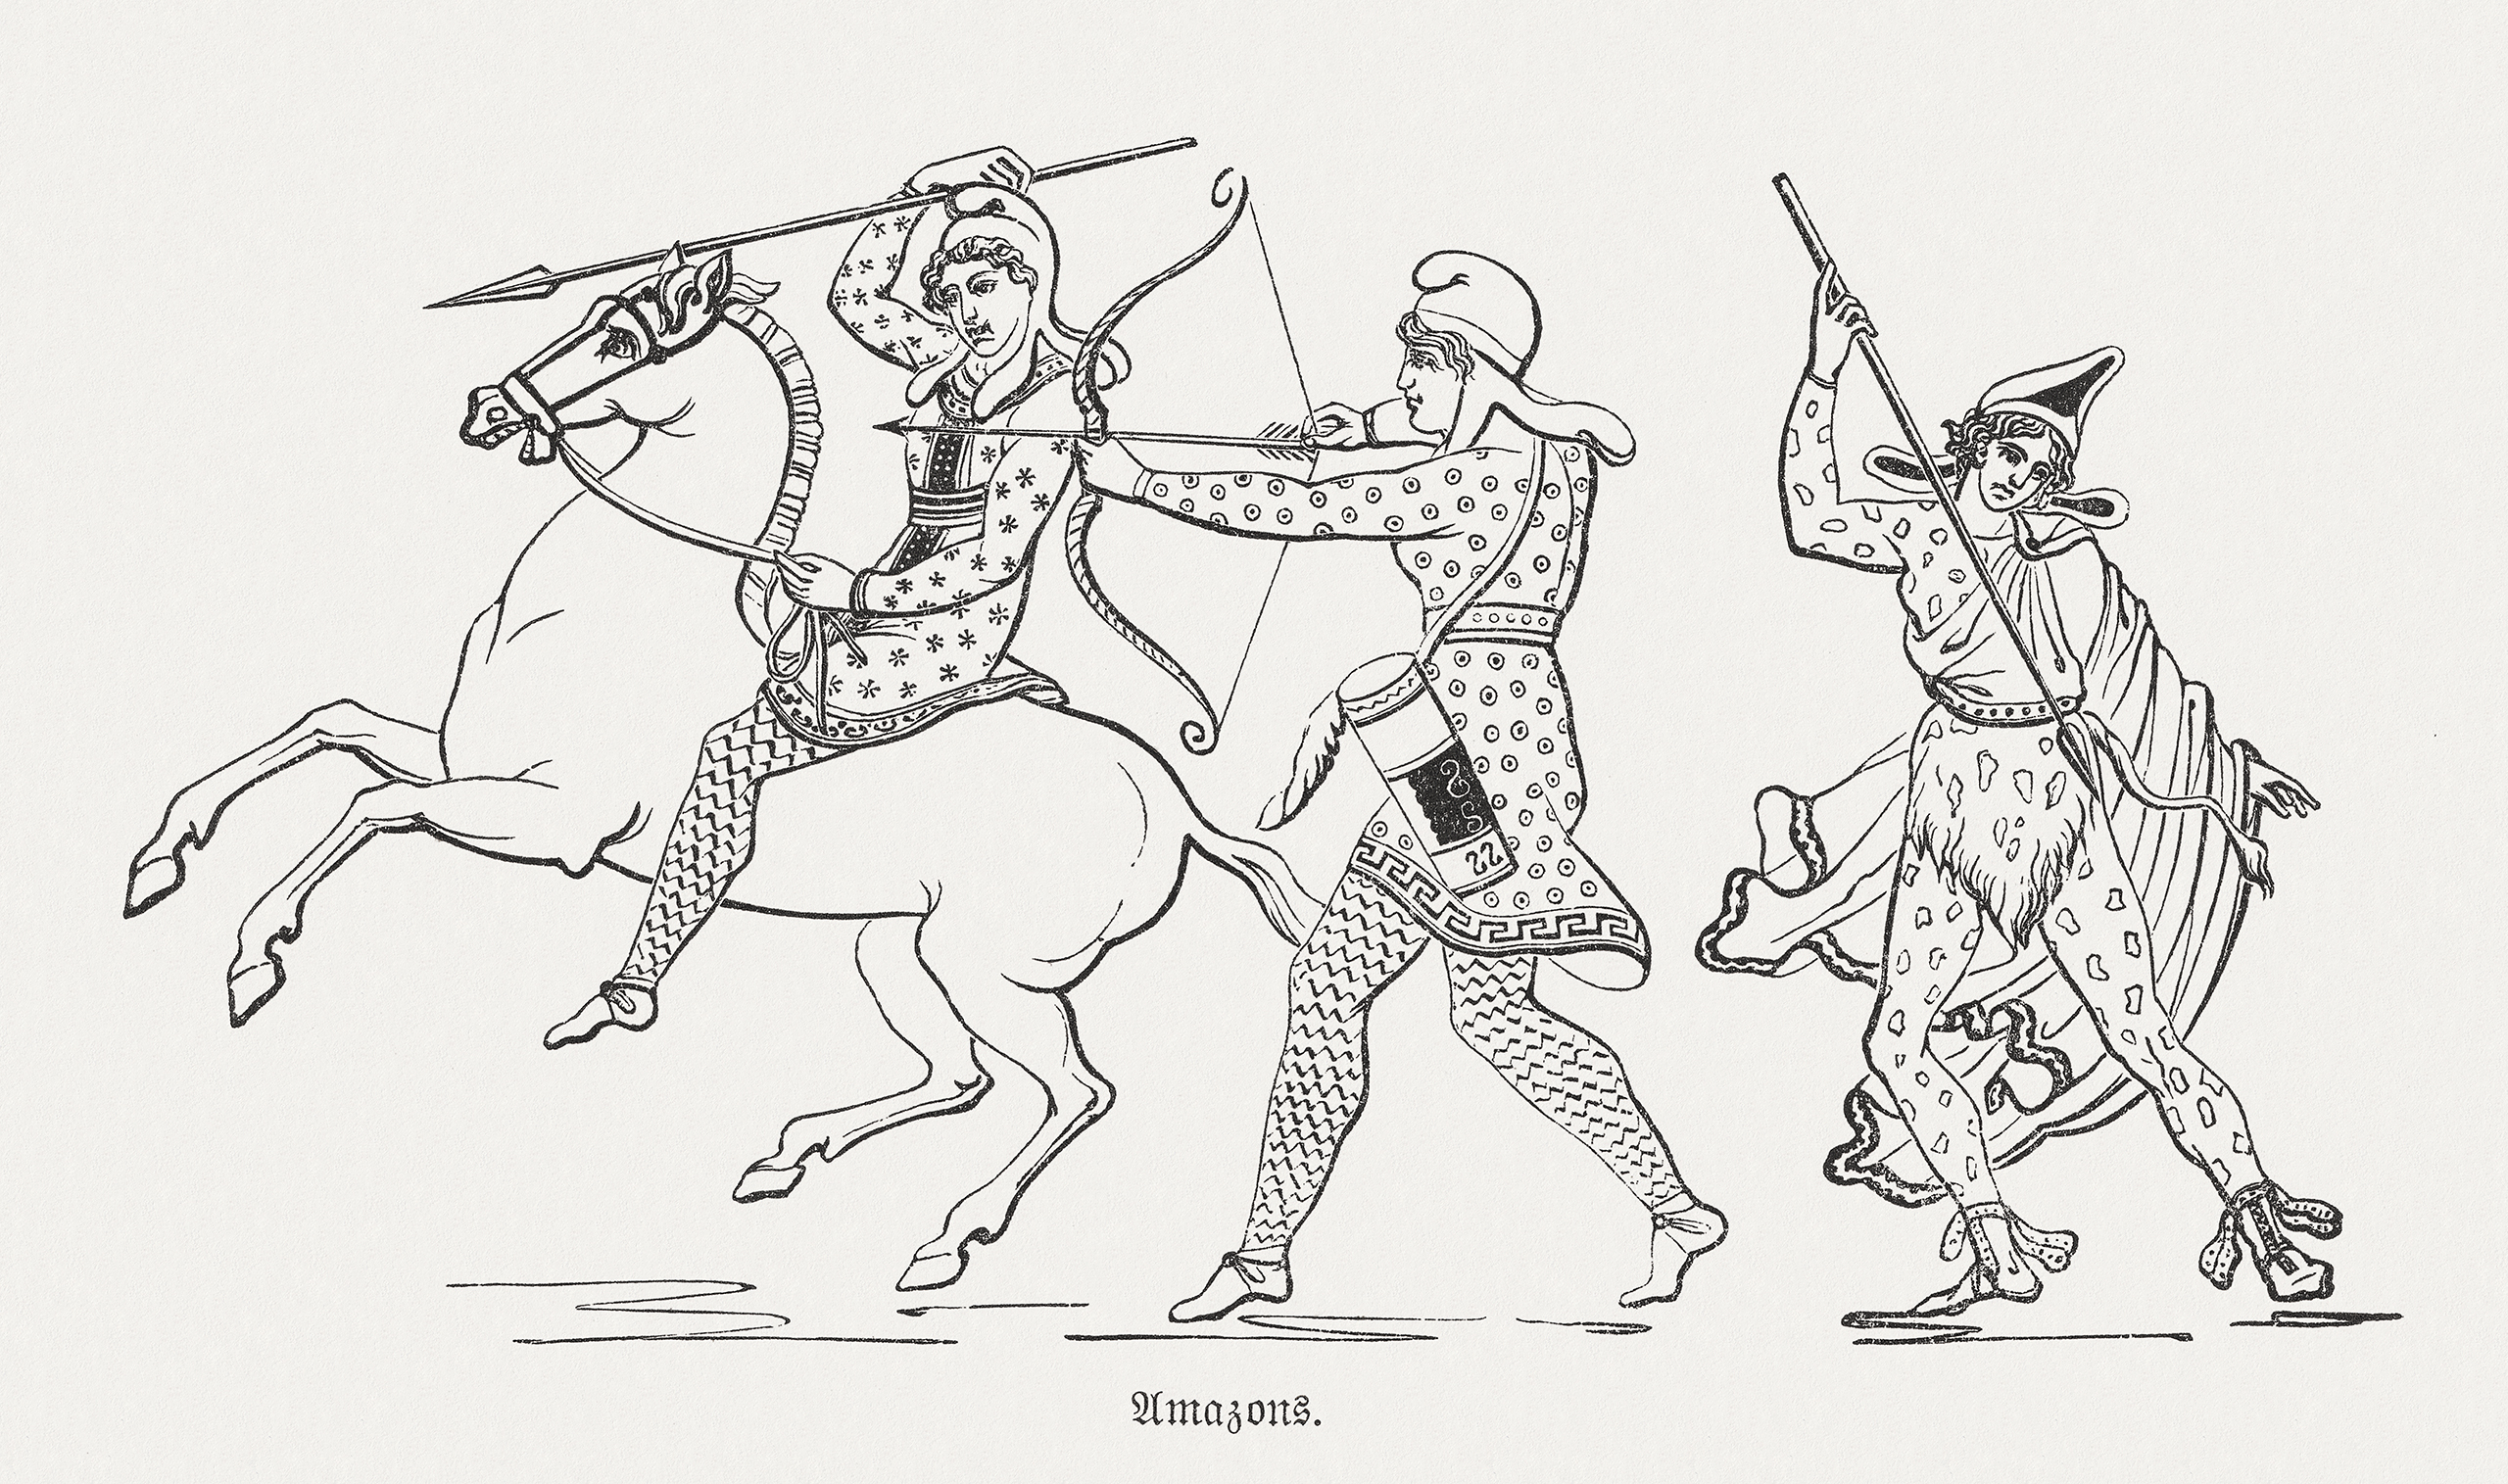 Amazon queen and amazons depicted in a wood engraving, 1880.